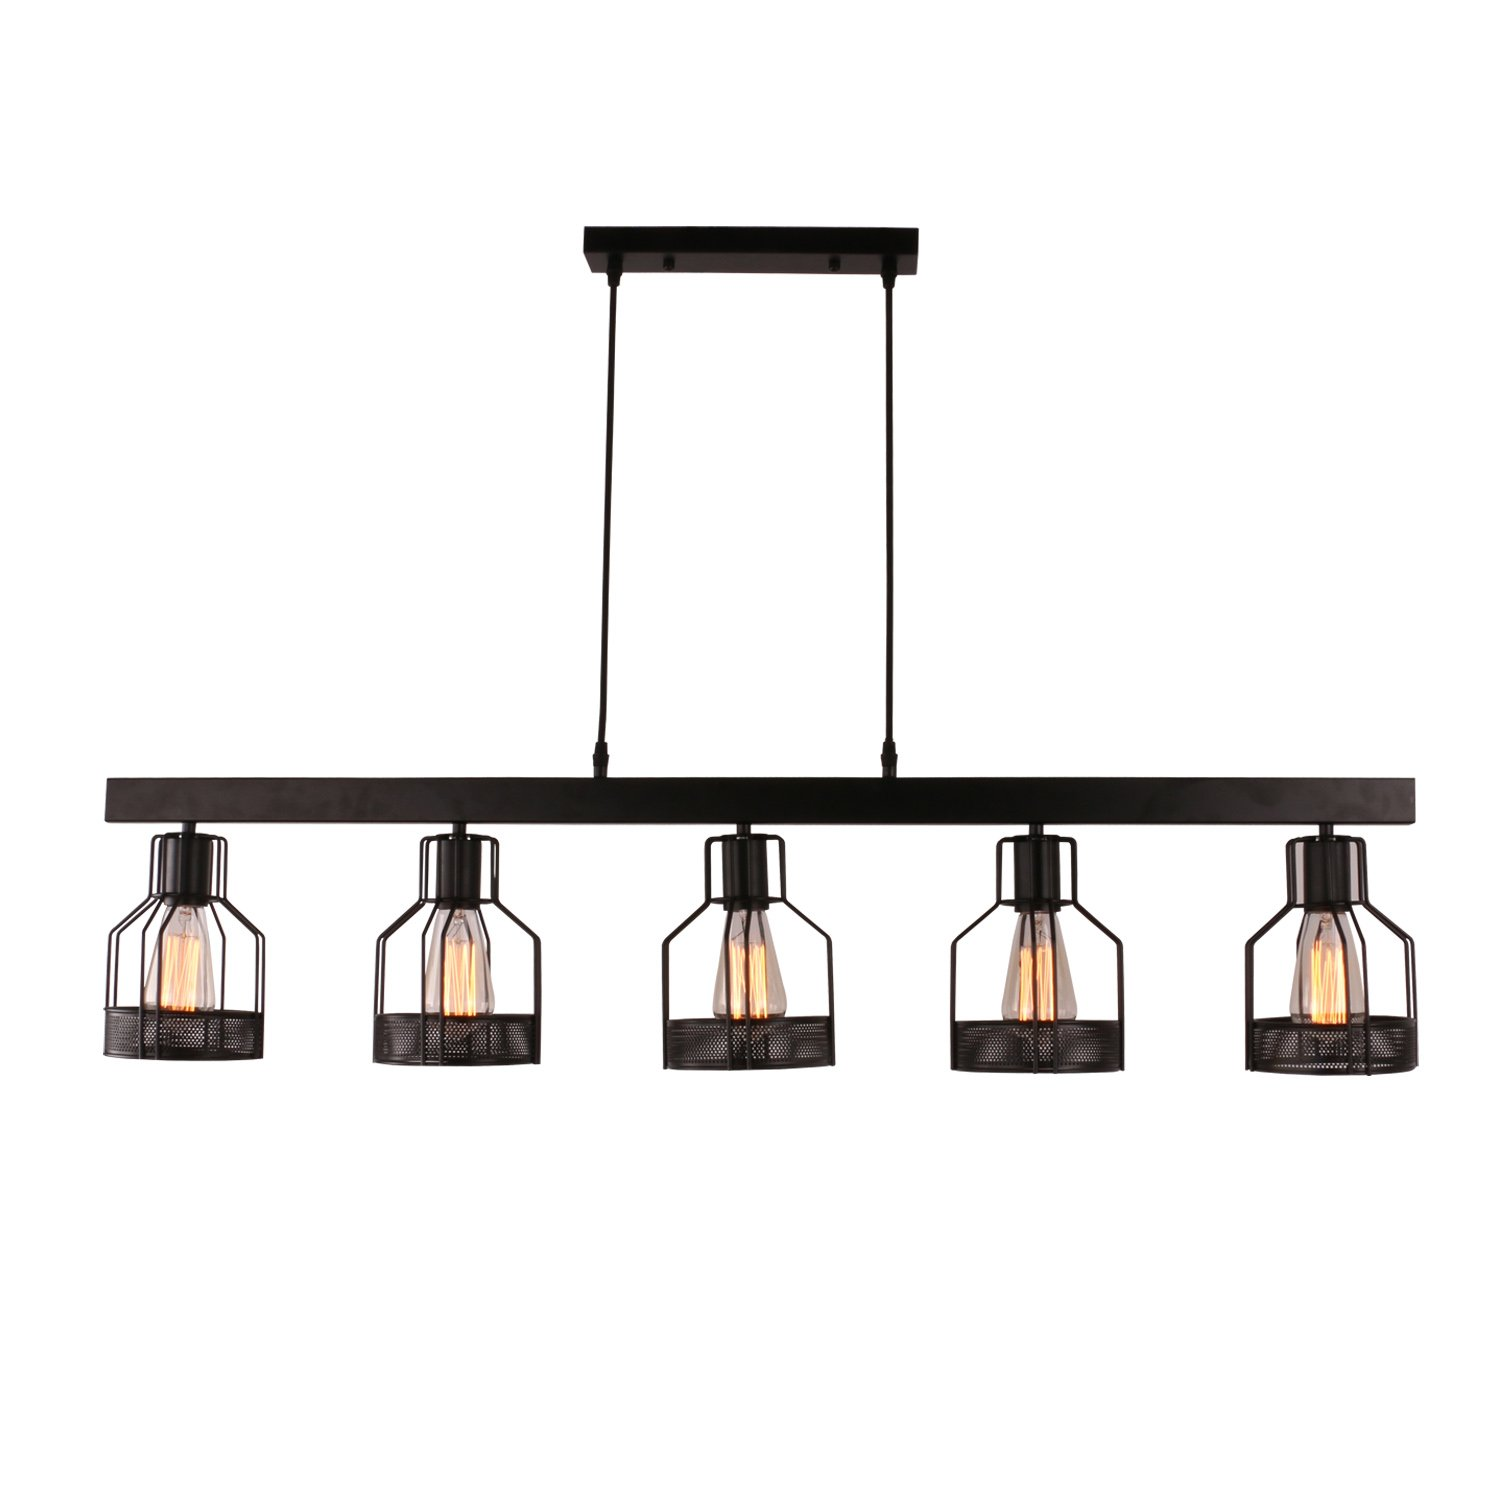 Unitary Brand Antique Black Metal Long Kitchen Island Light with 5 E26 Bulb Sockets 200W Painted Finish